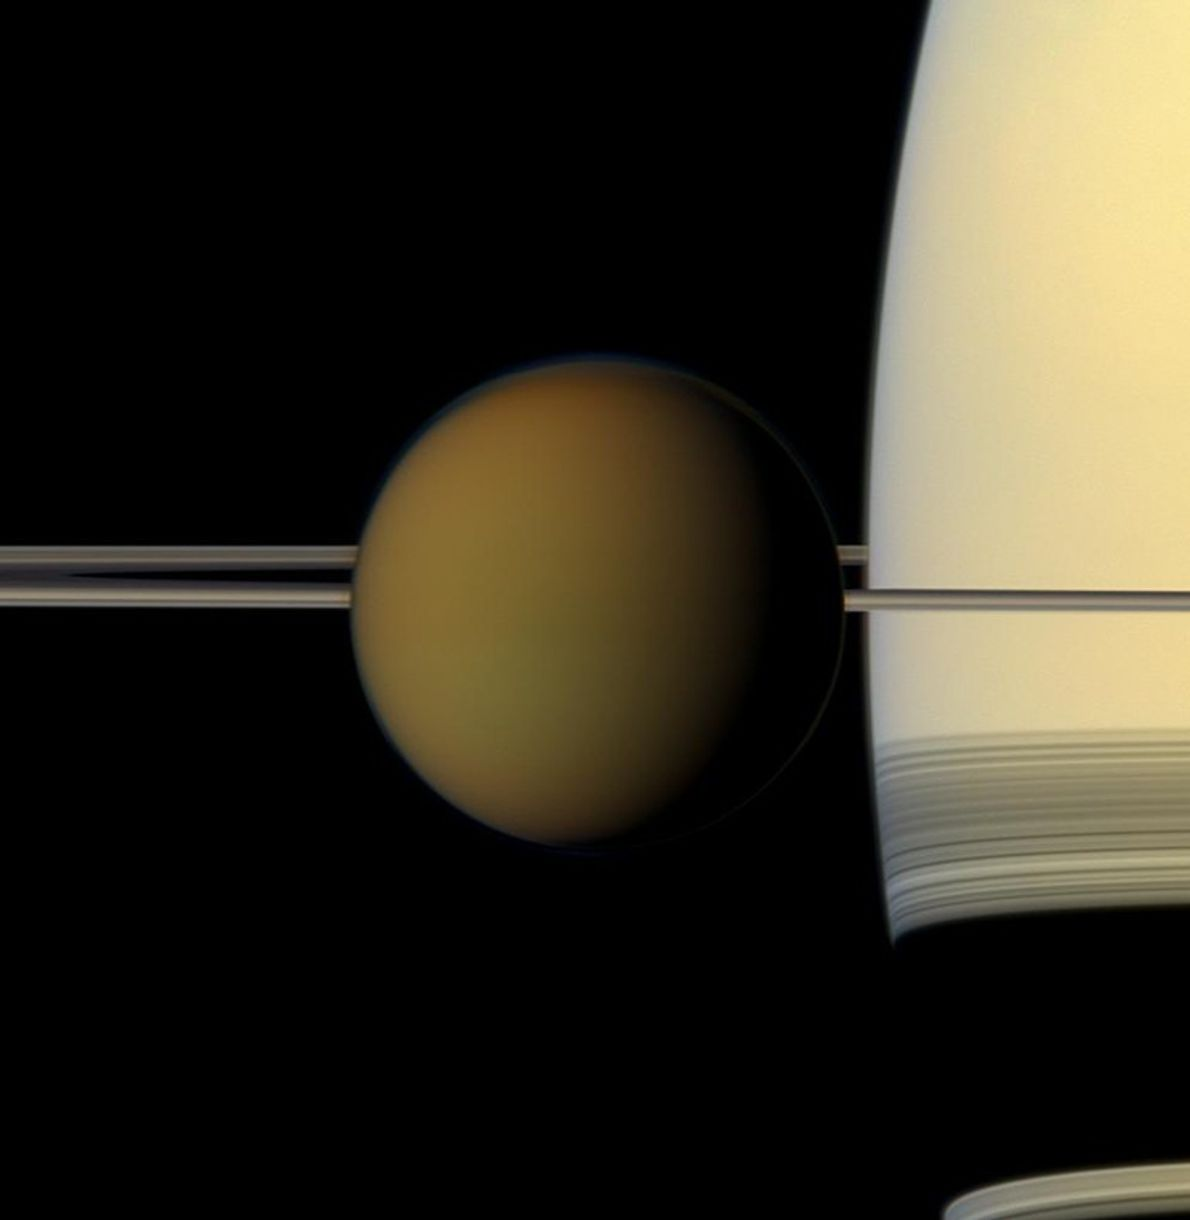 The colourful globe of Saturn's largest moon, Titan, passes in front of the planet and its ...